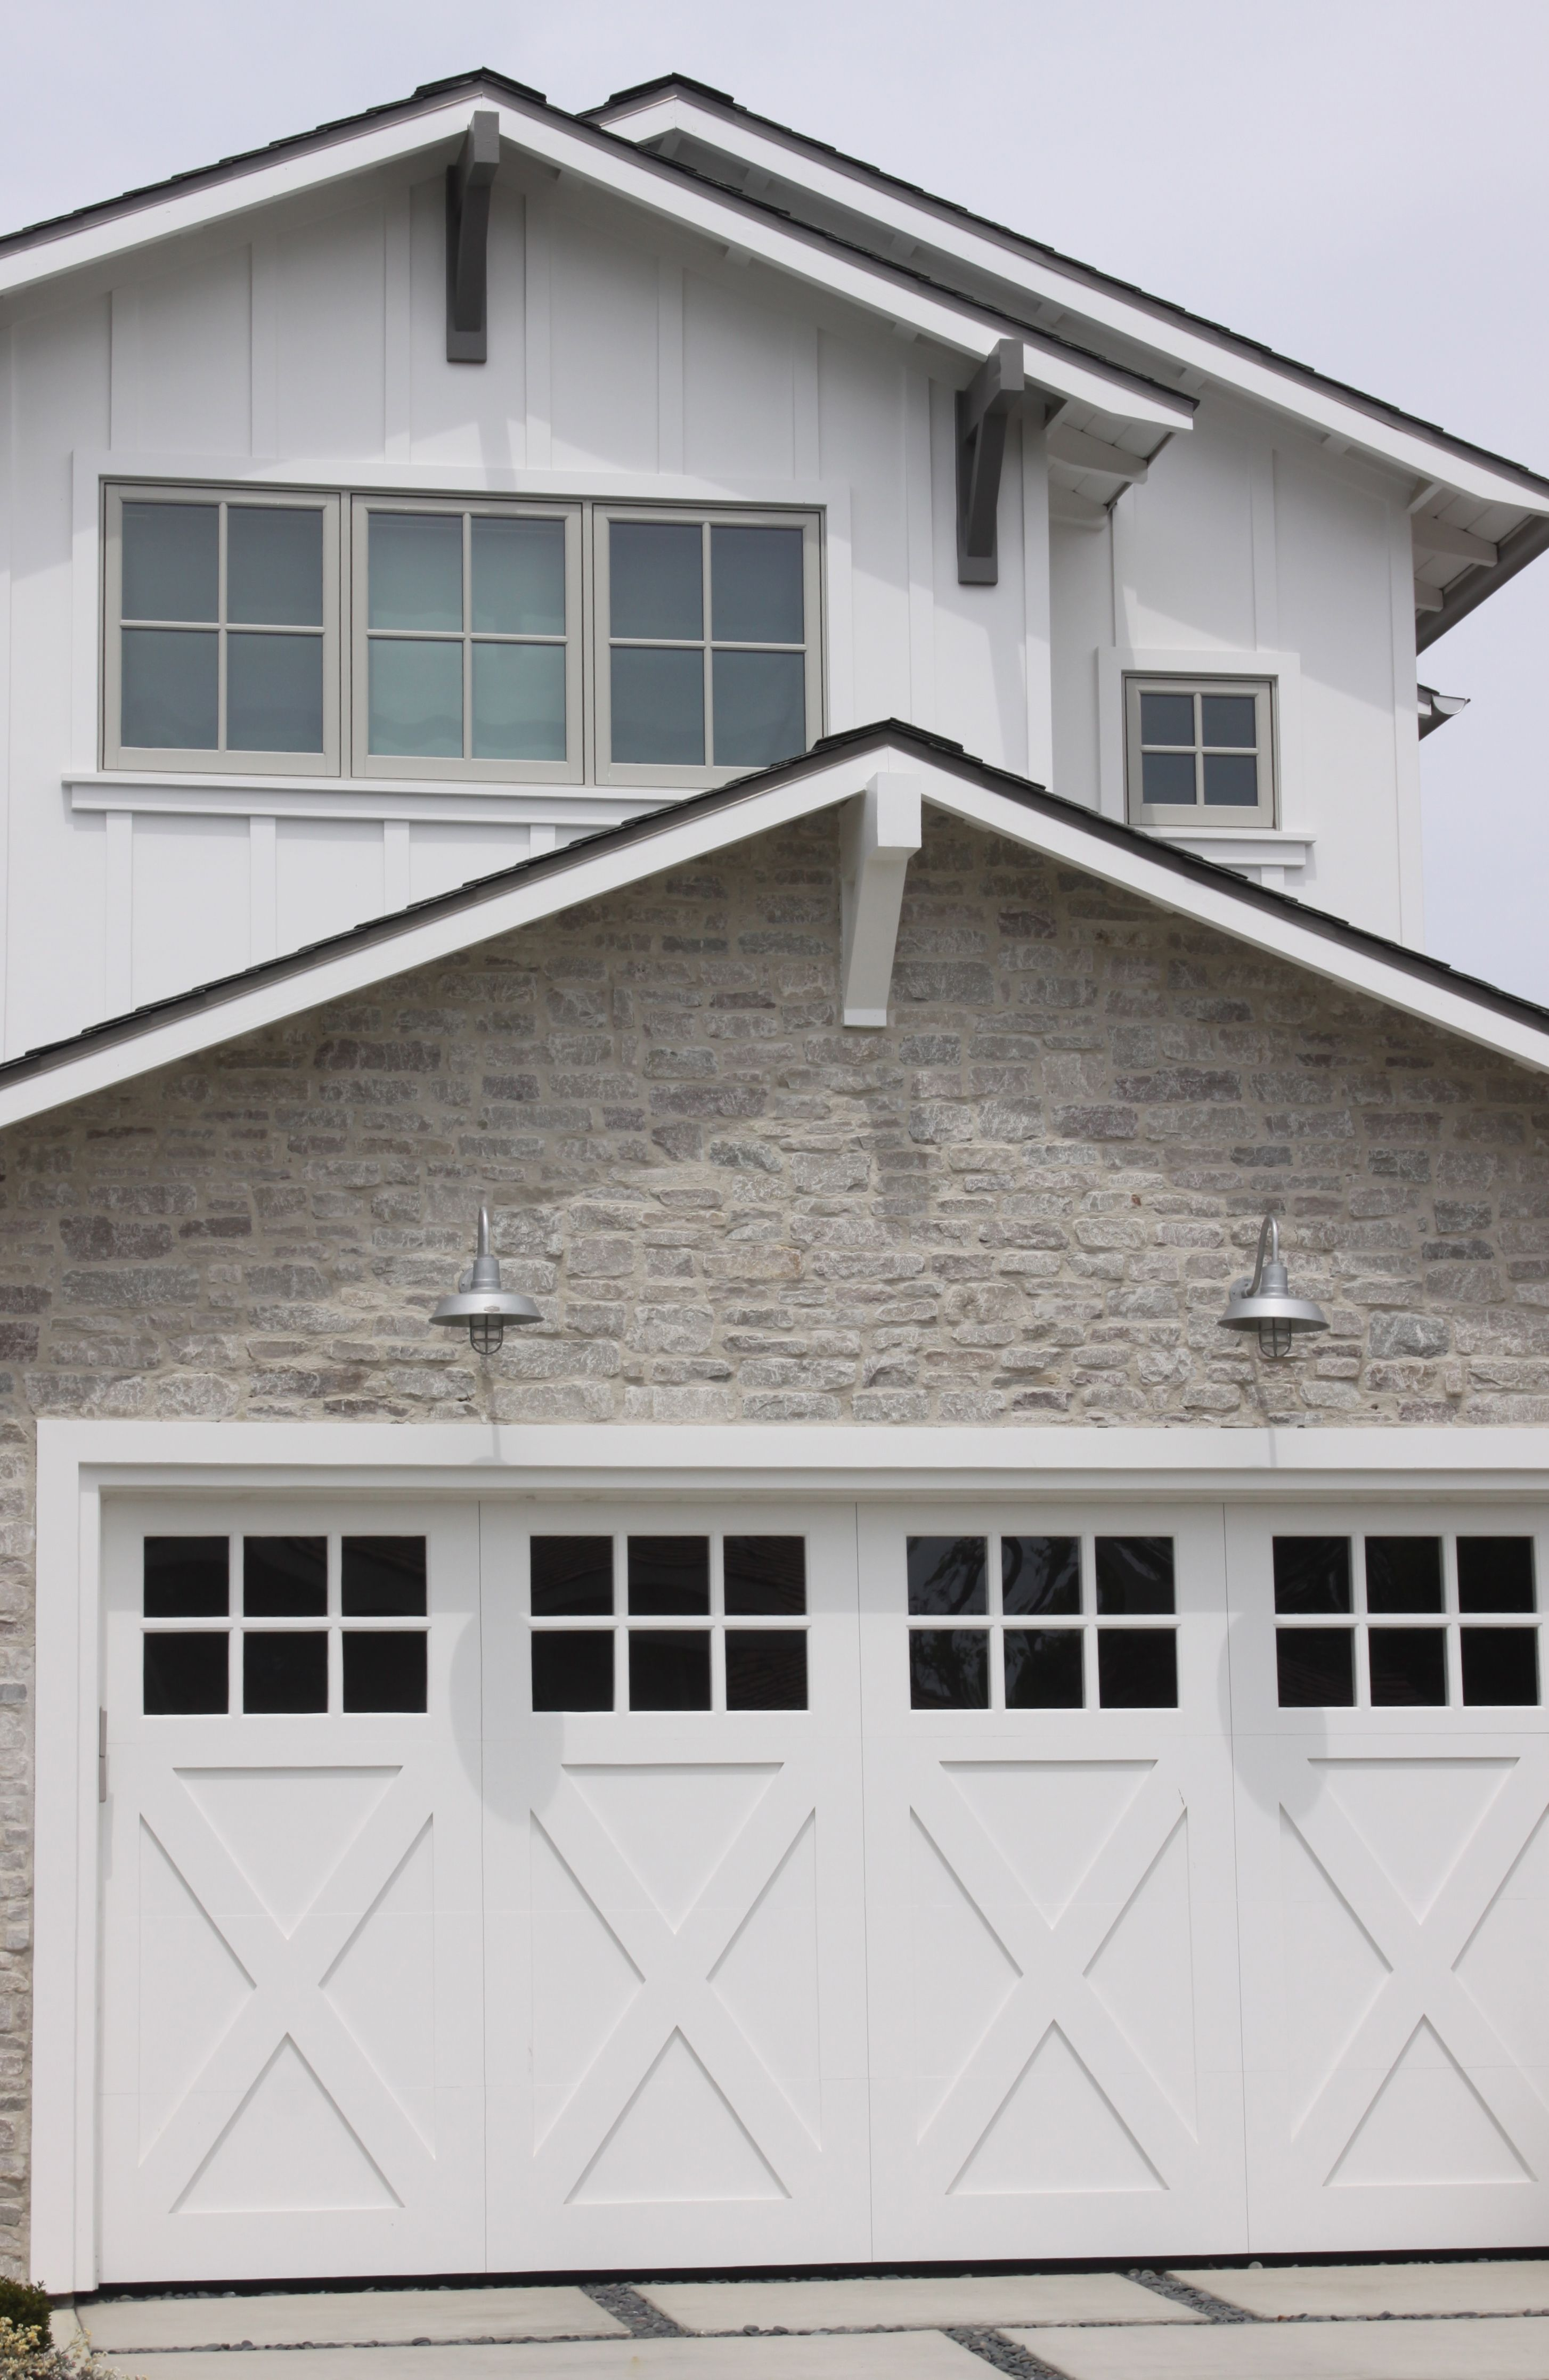 Olsen Home Exteriors: Stone Exterior With Barn Lights